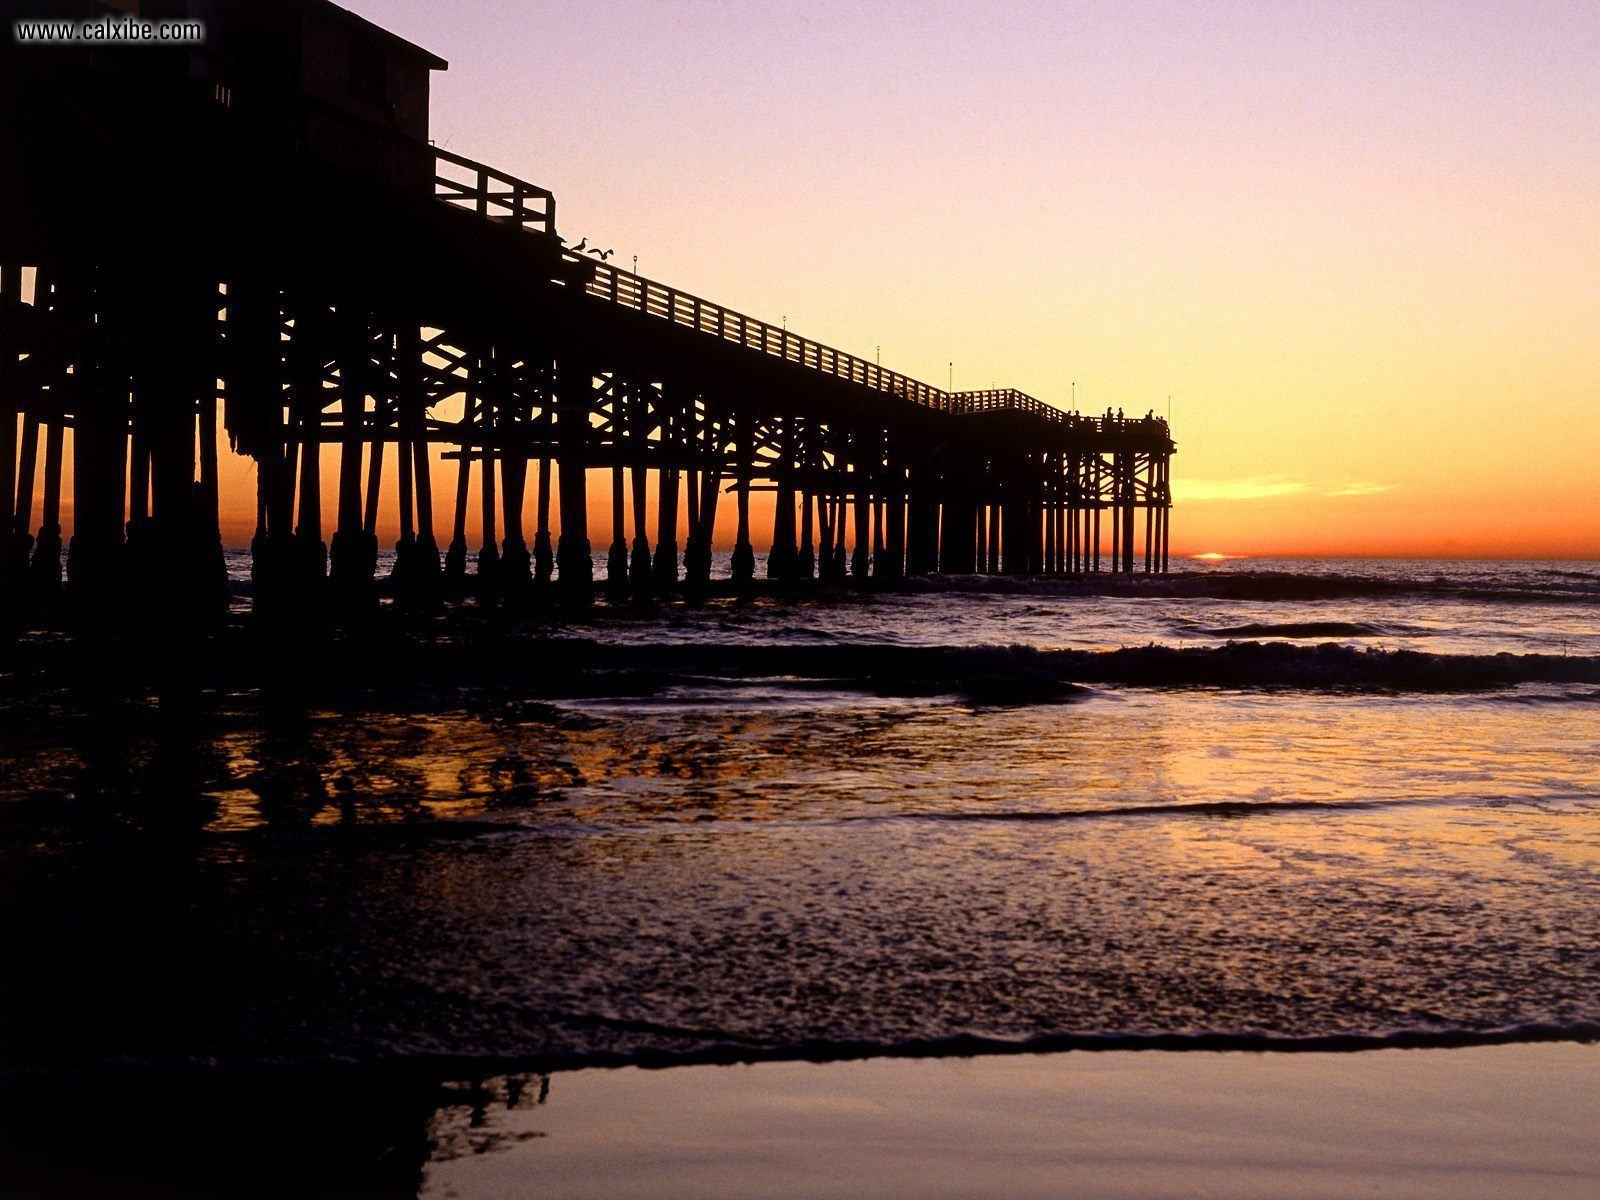 Known places Crystal Pier San Diego California picture nr 6314 1600x1200